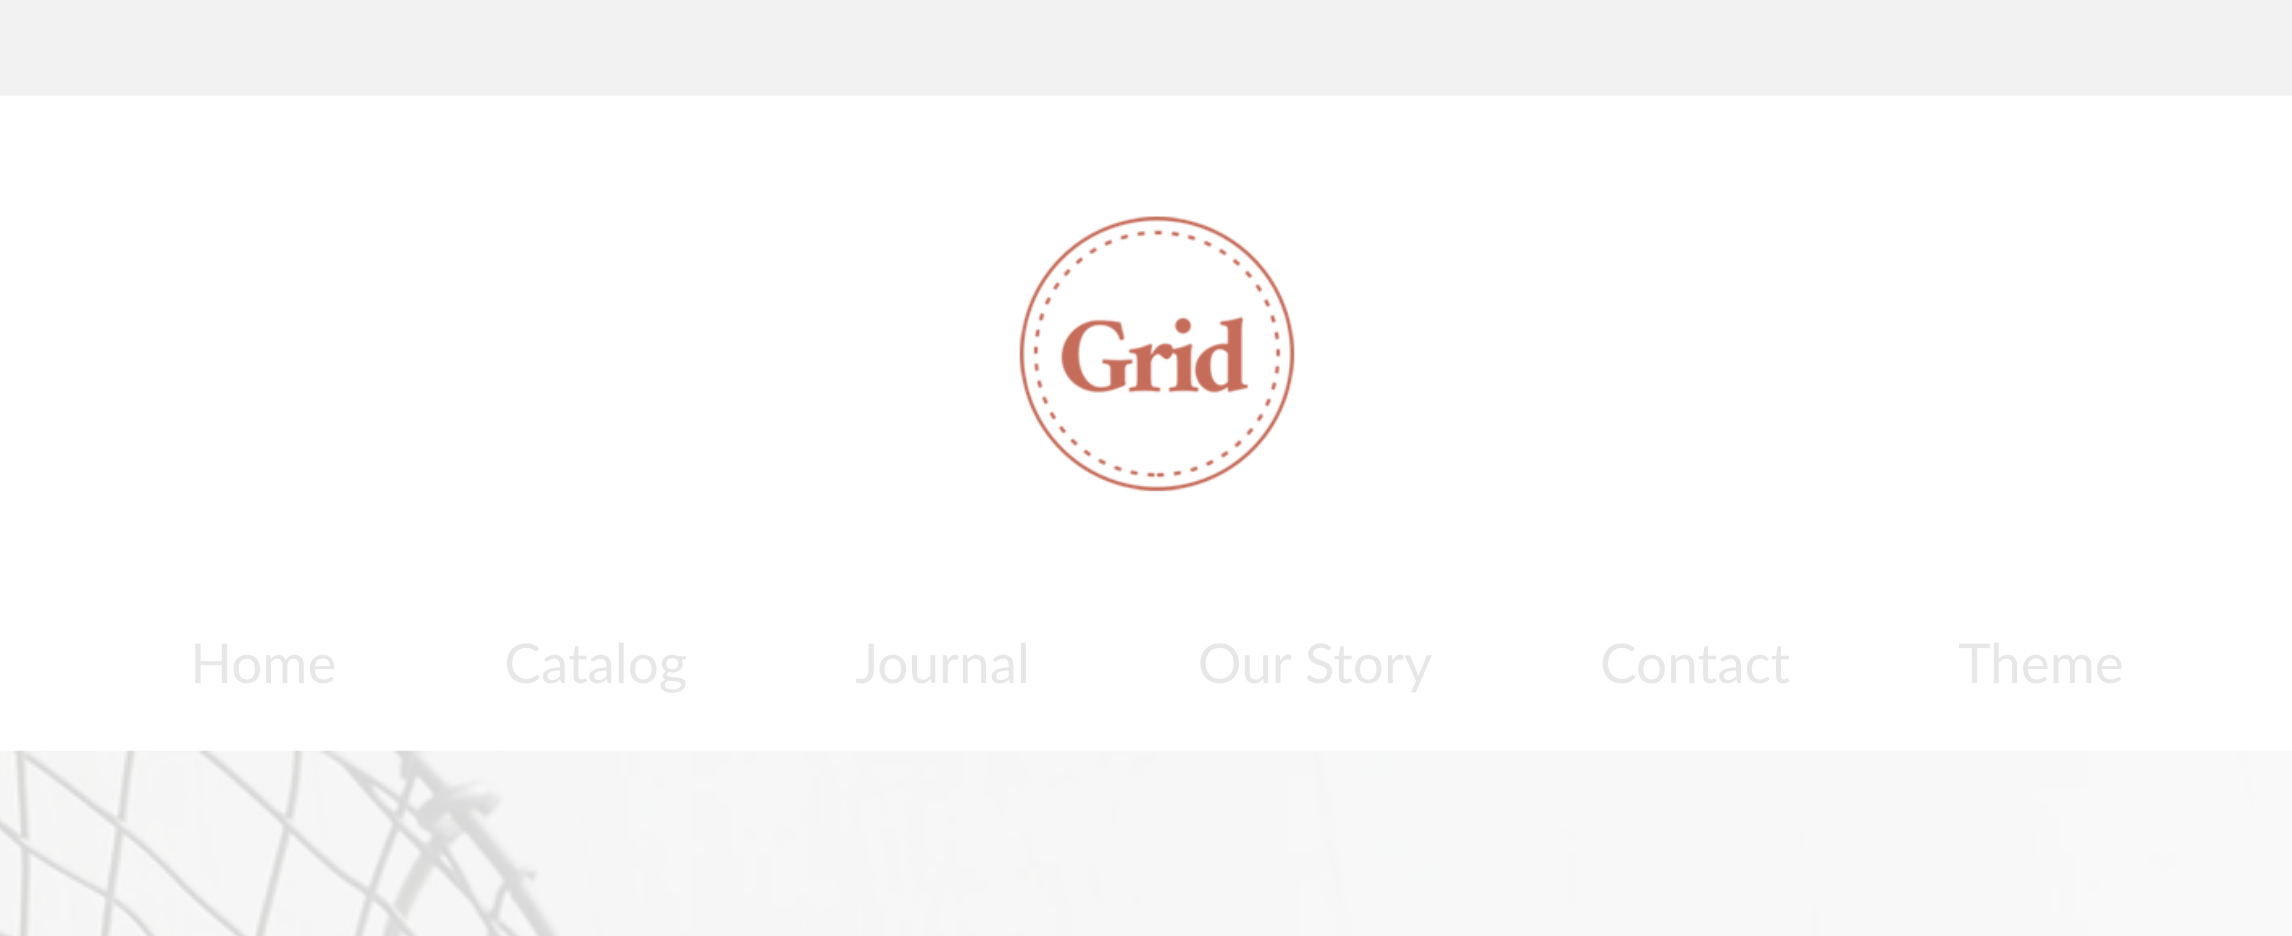 Grid_logo_centered_above_navigation_items.png